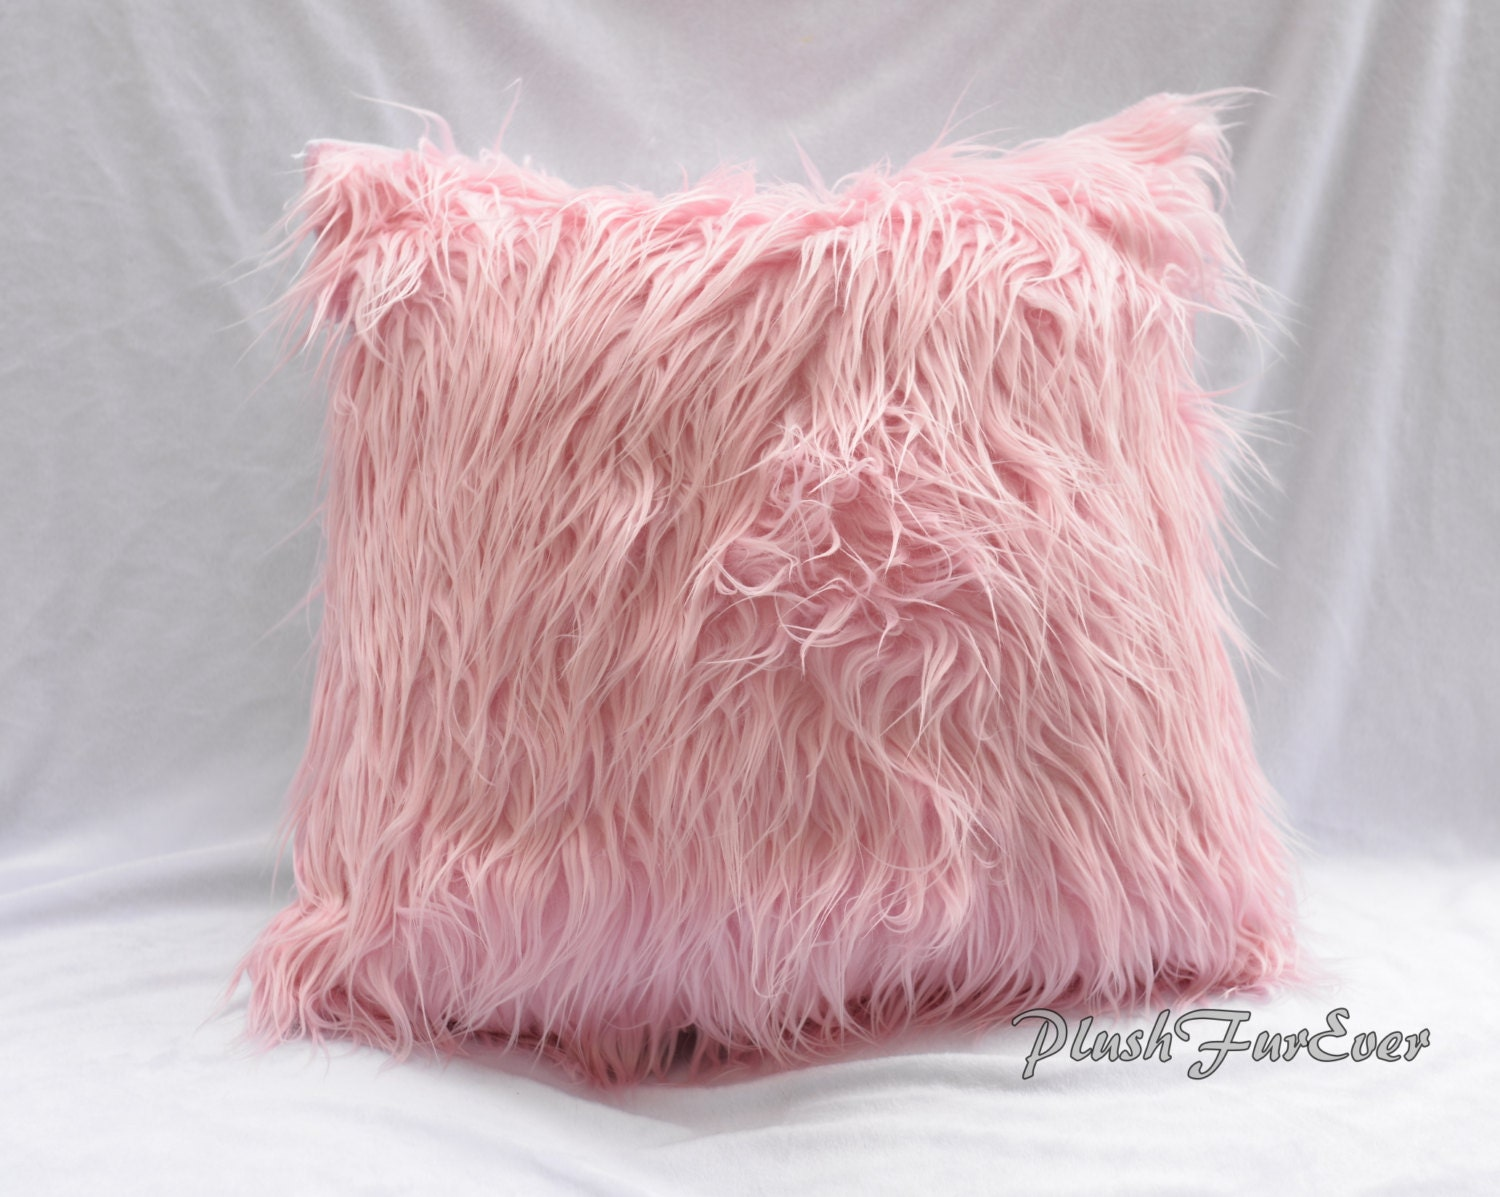 Faux Fur Home Decor Pillows 17 x 17 Inserts